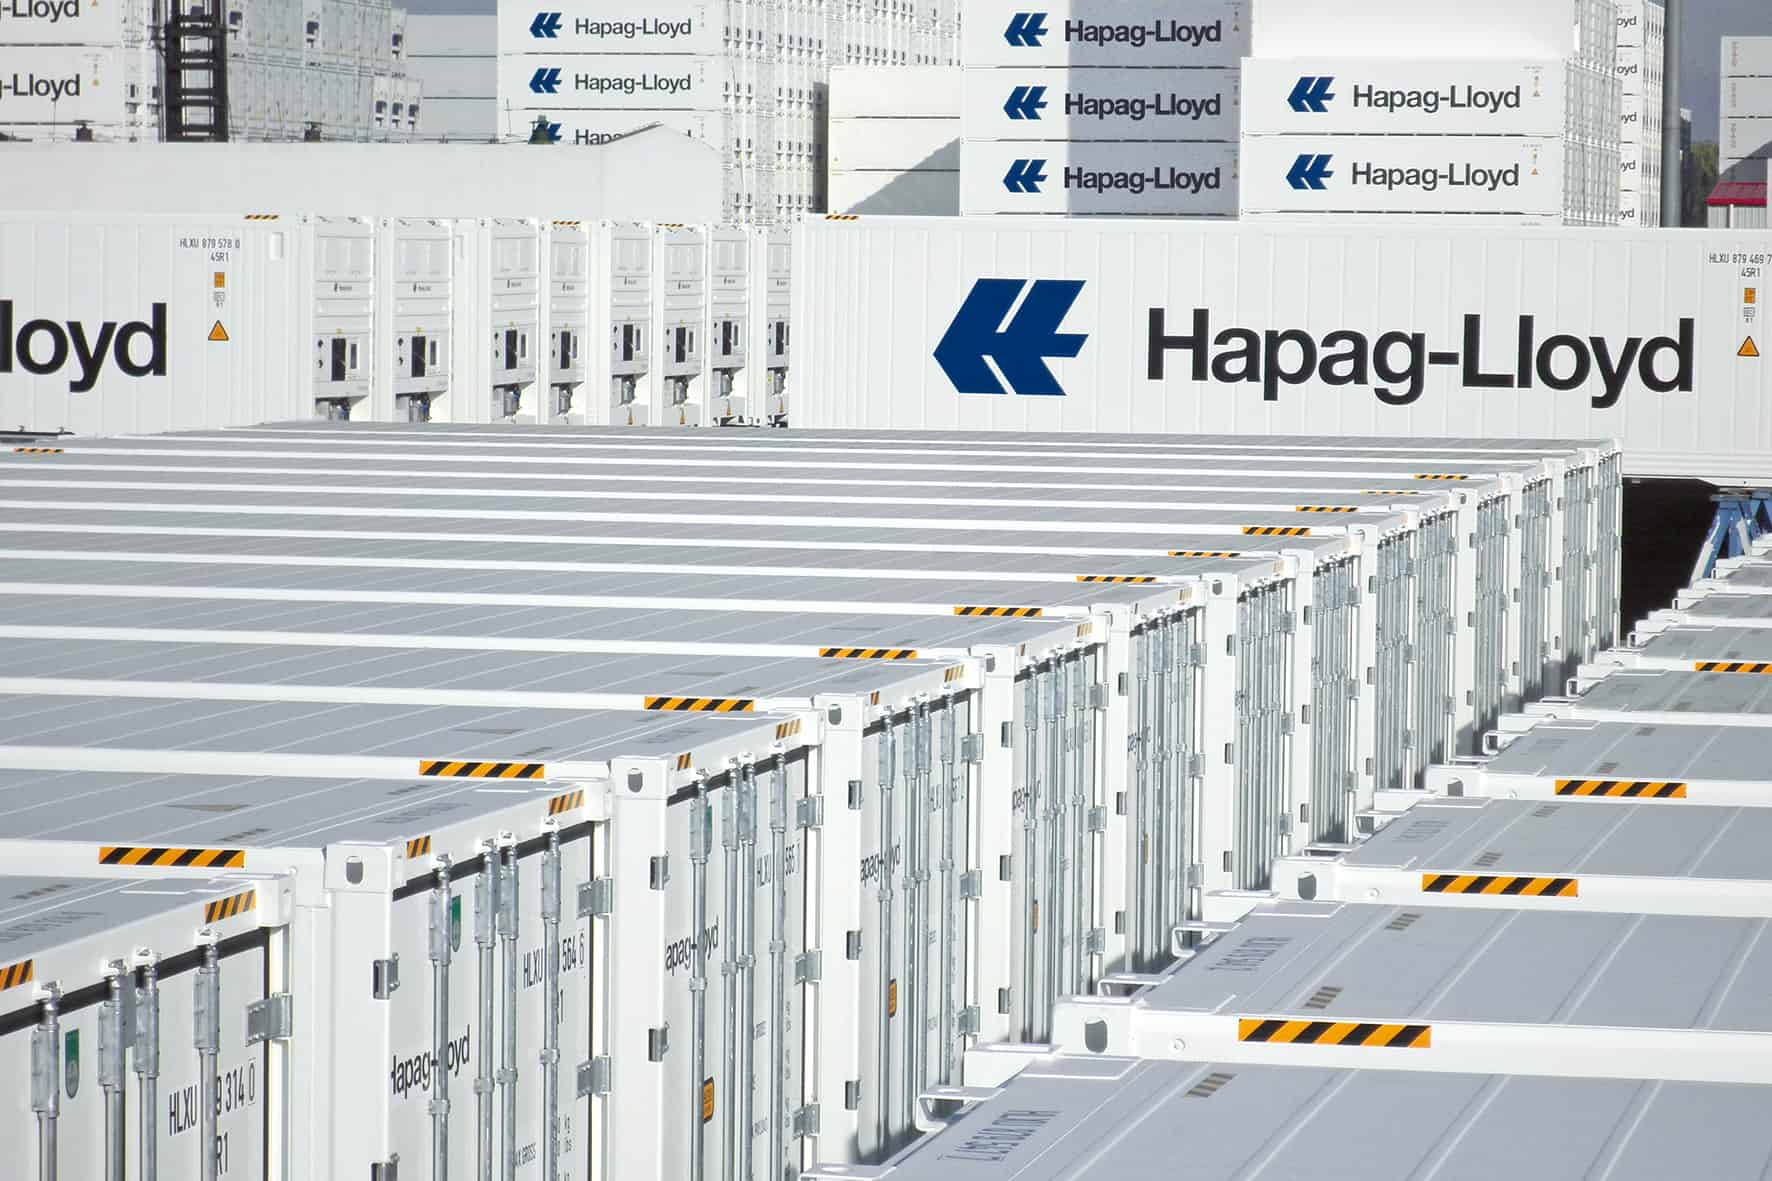 Hapag-Lloyd orders 13,420 new reefers